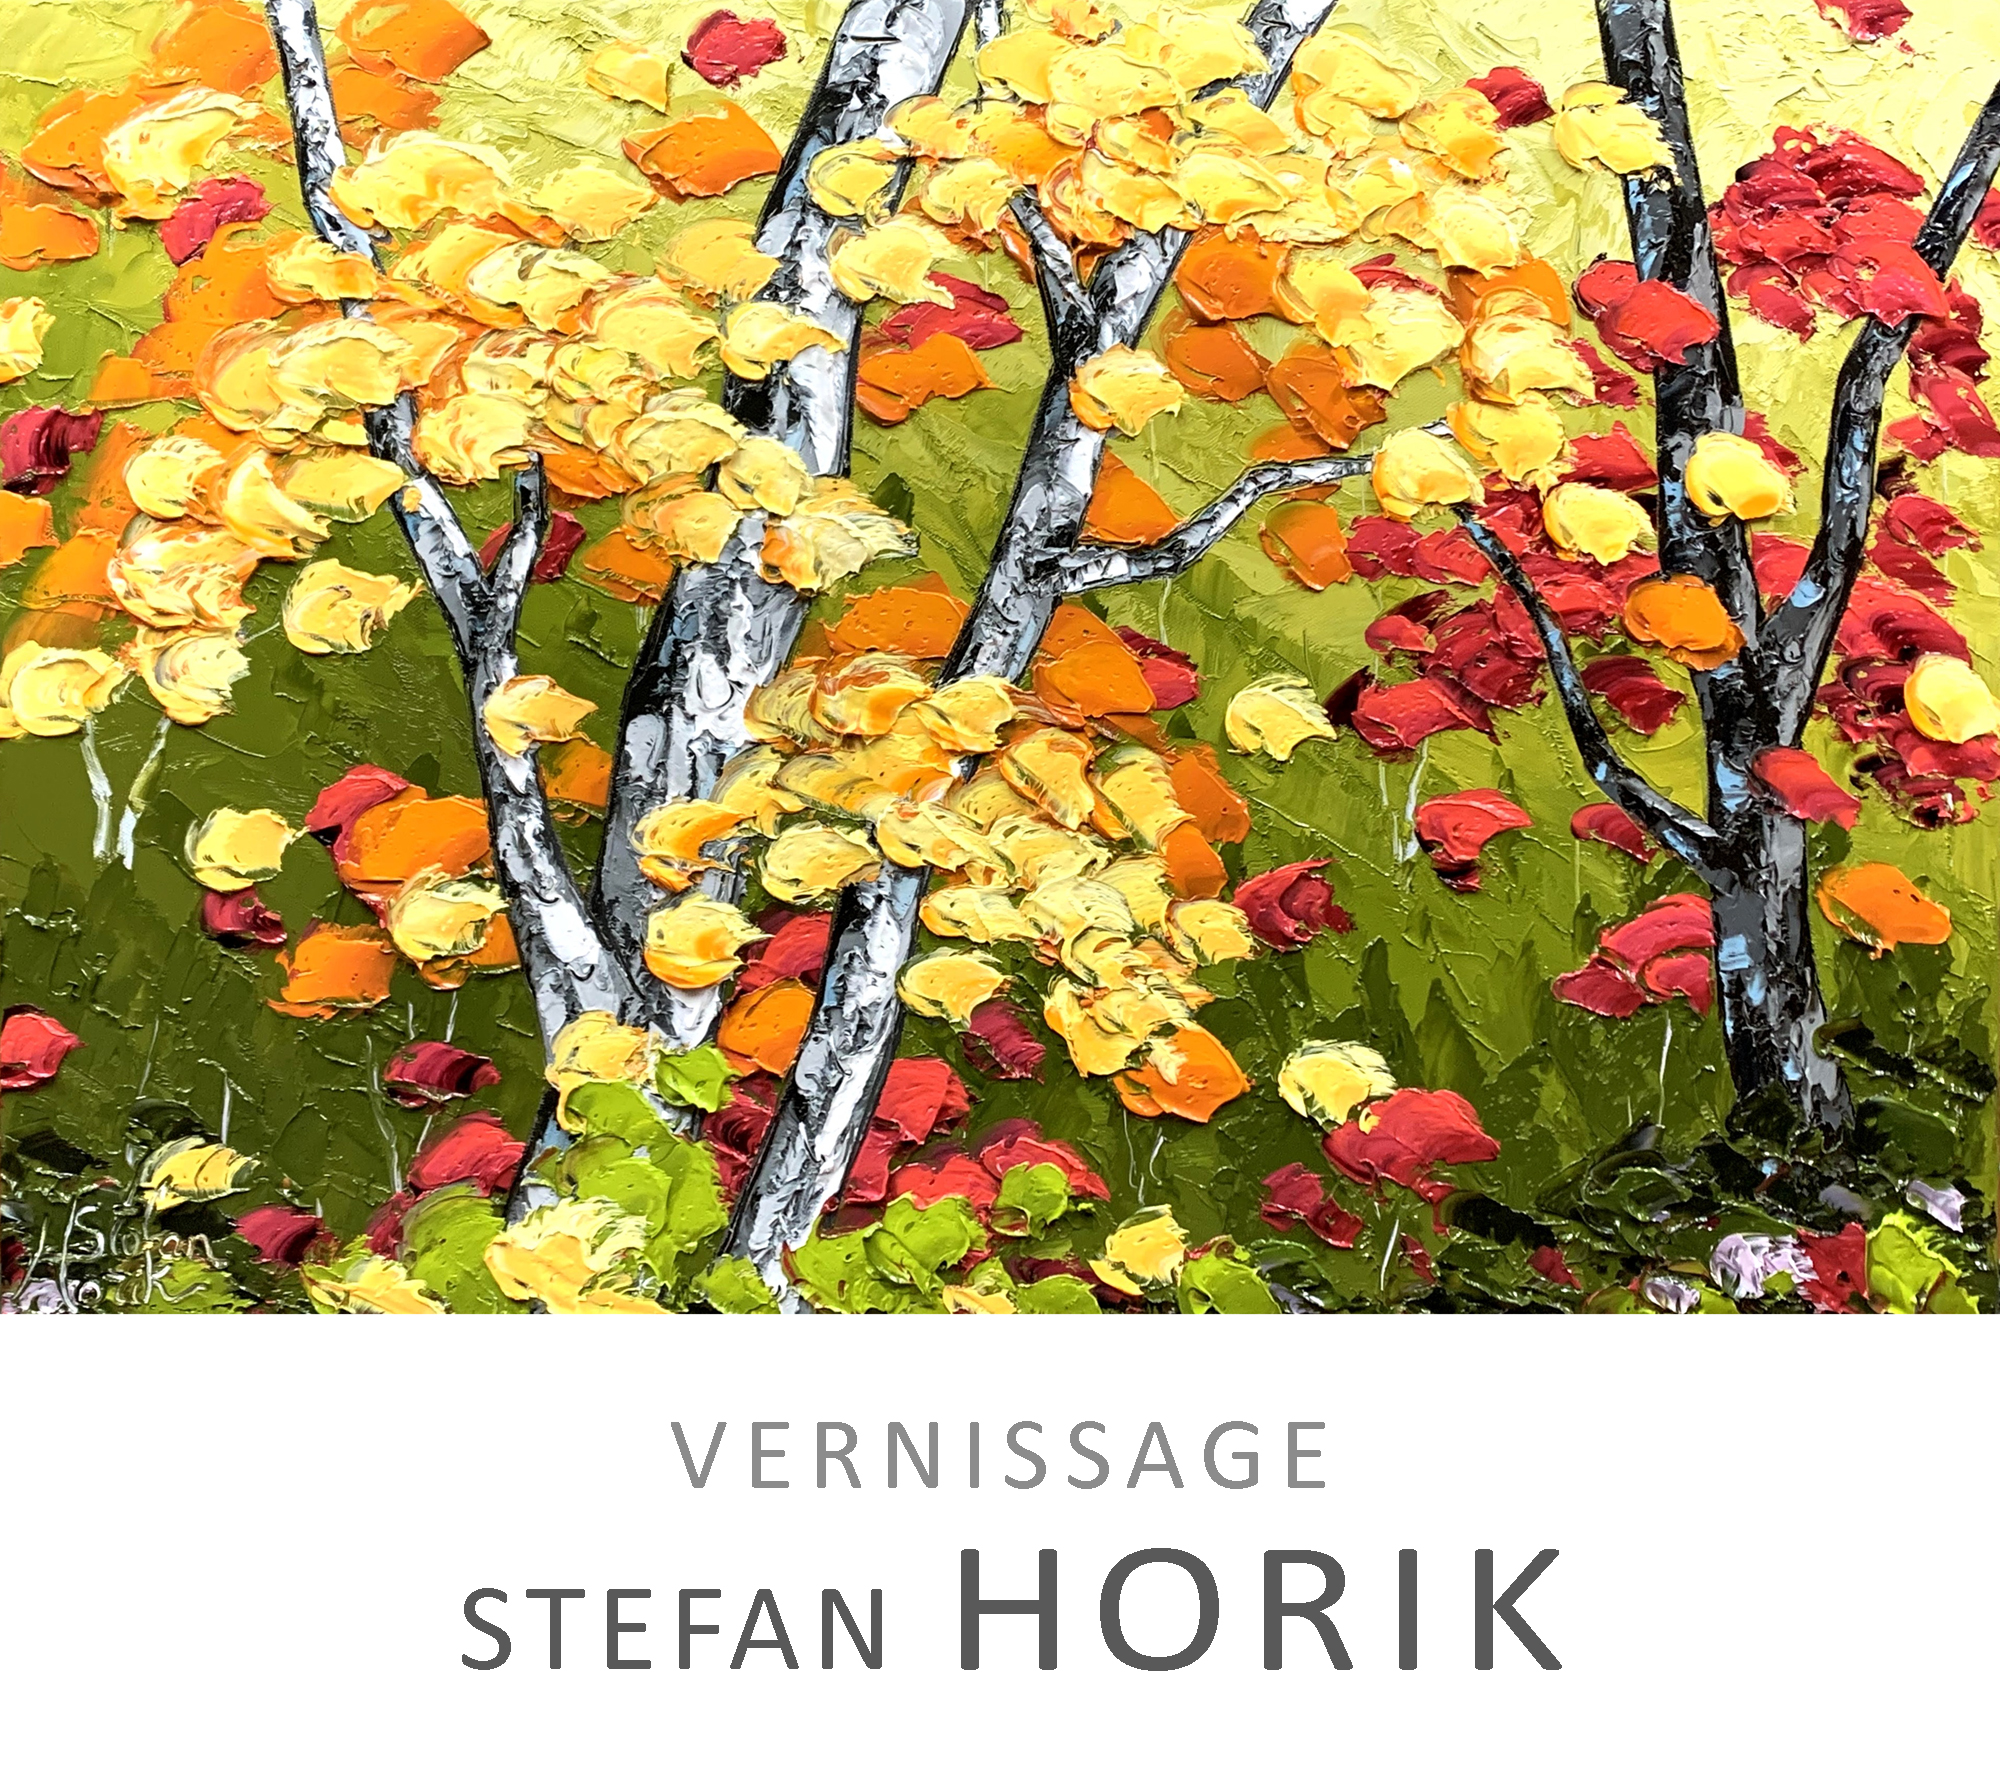 Vernissage Stefan Horik